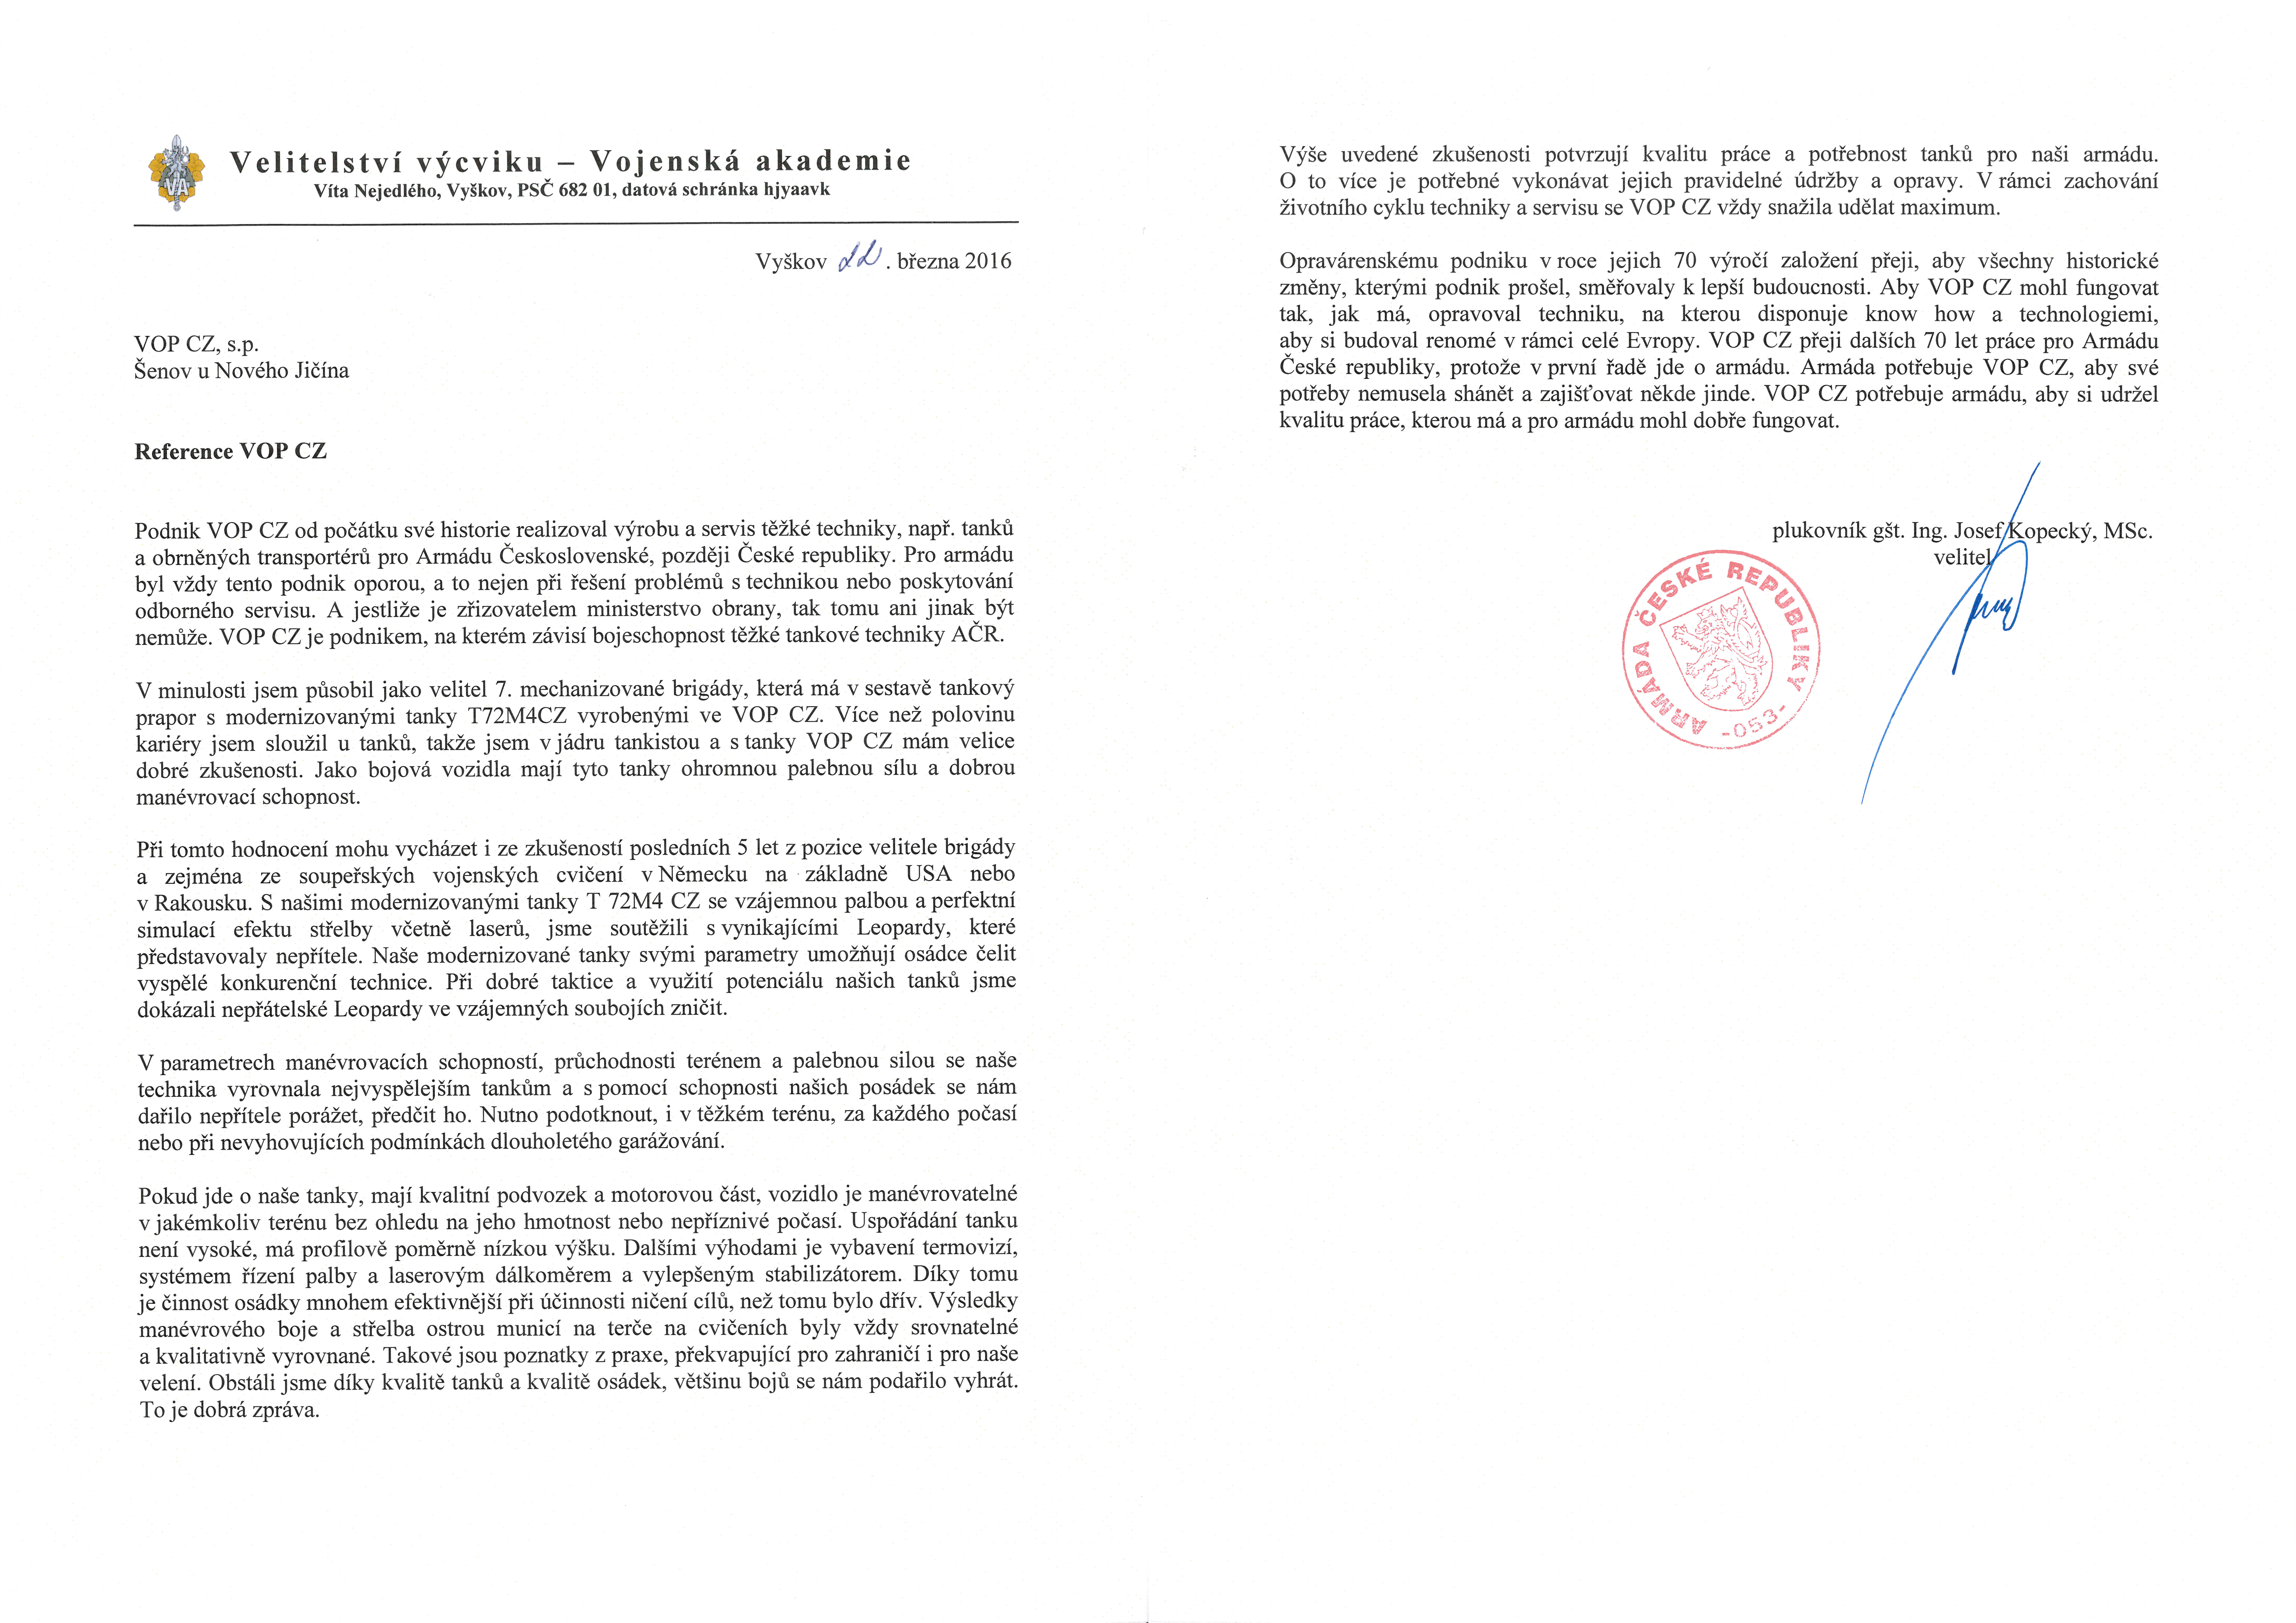 Vop cz sp reference letter from training command military academy expocarfo Choice Image